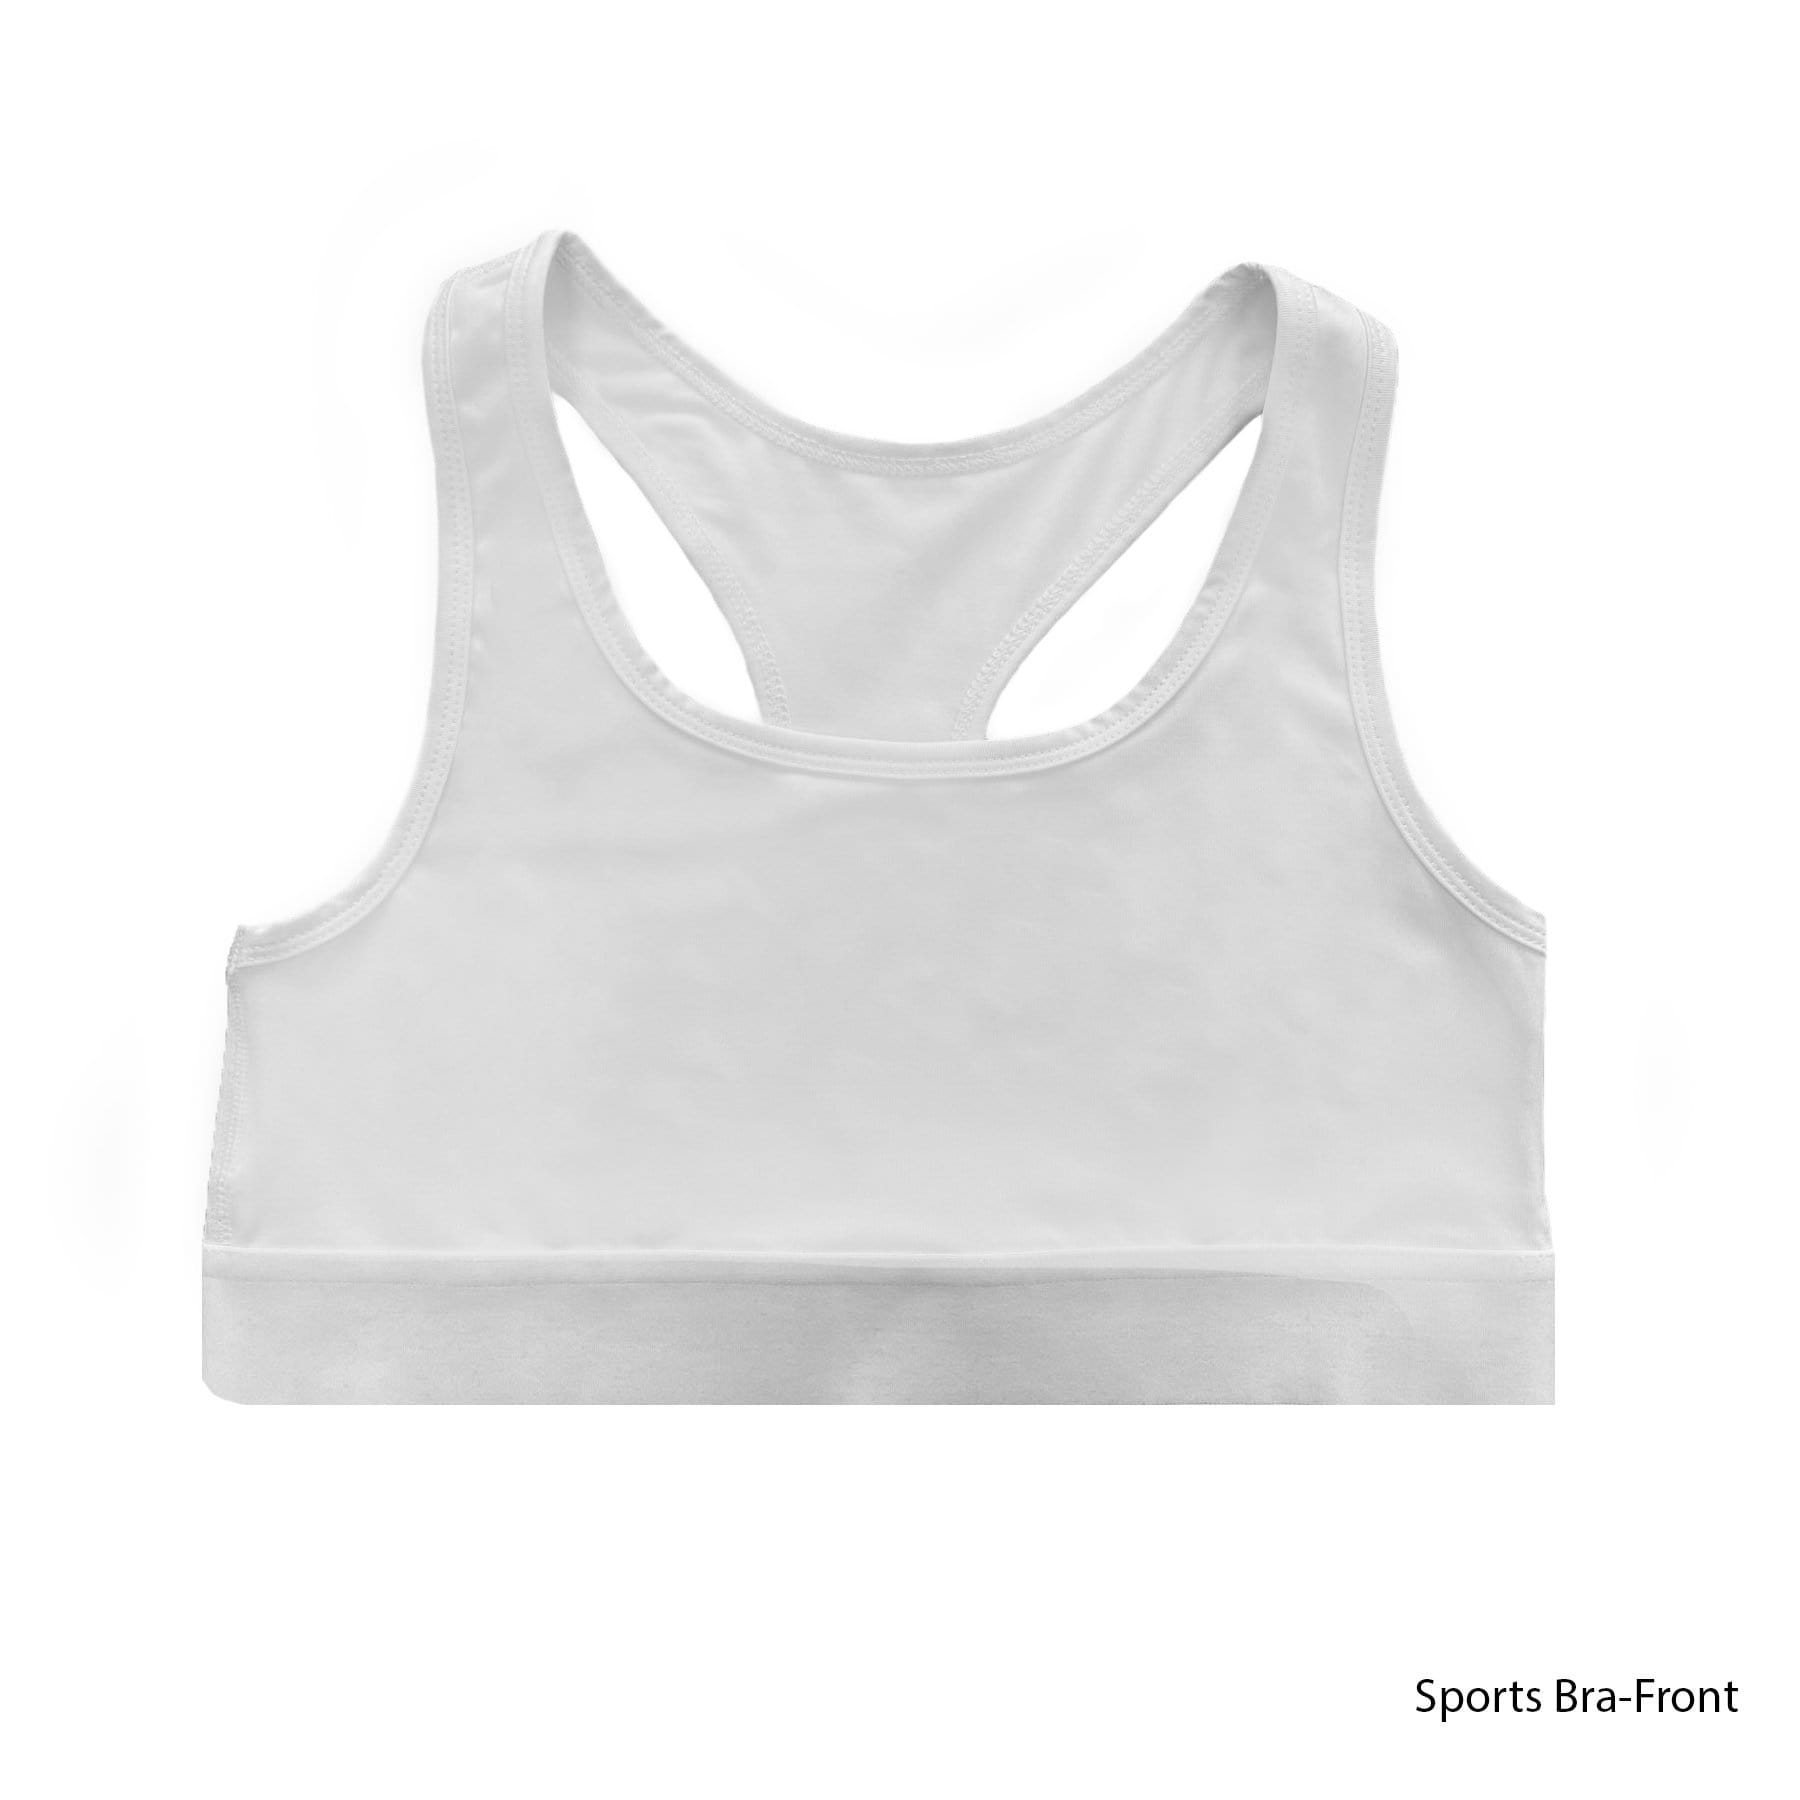 Blank Ladies Sports Bra